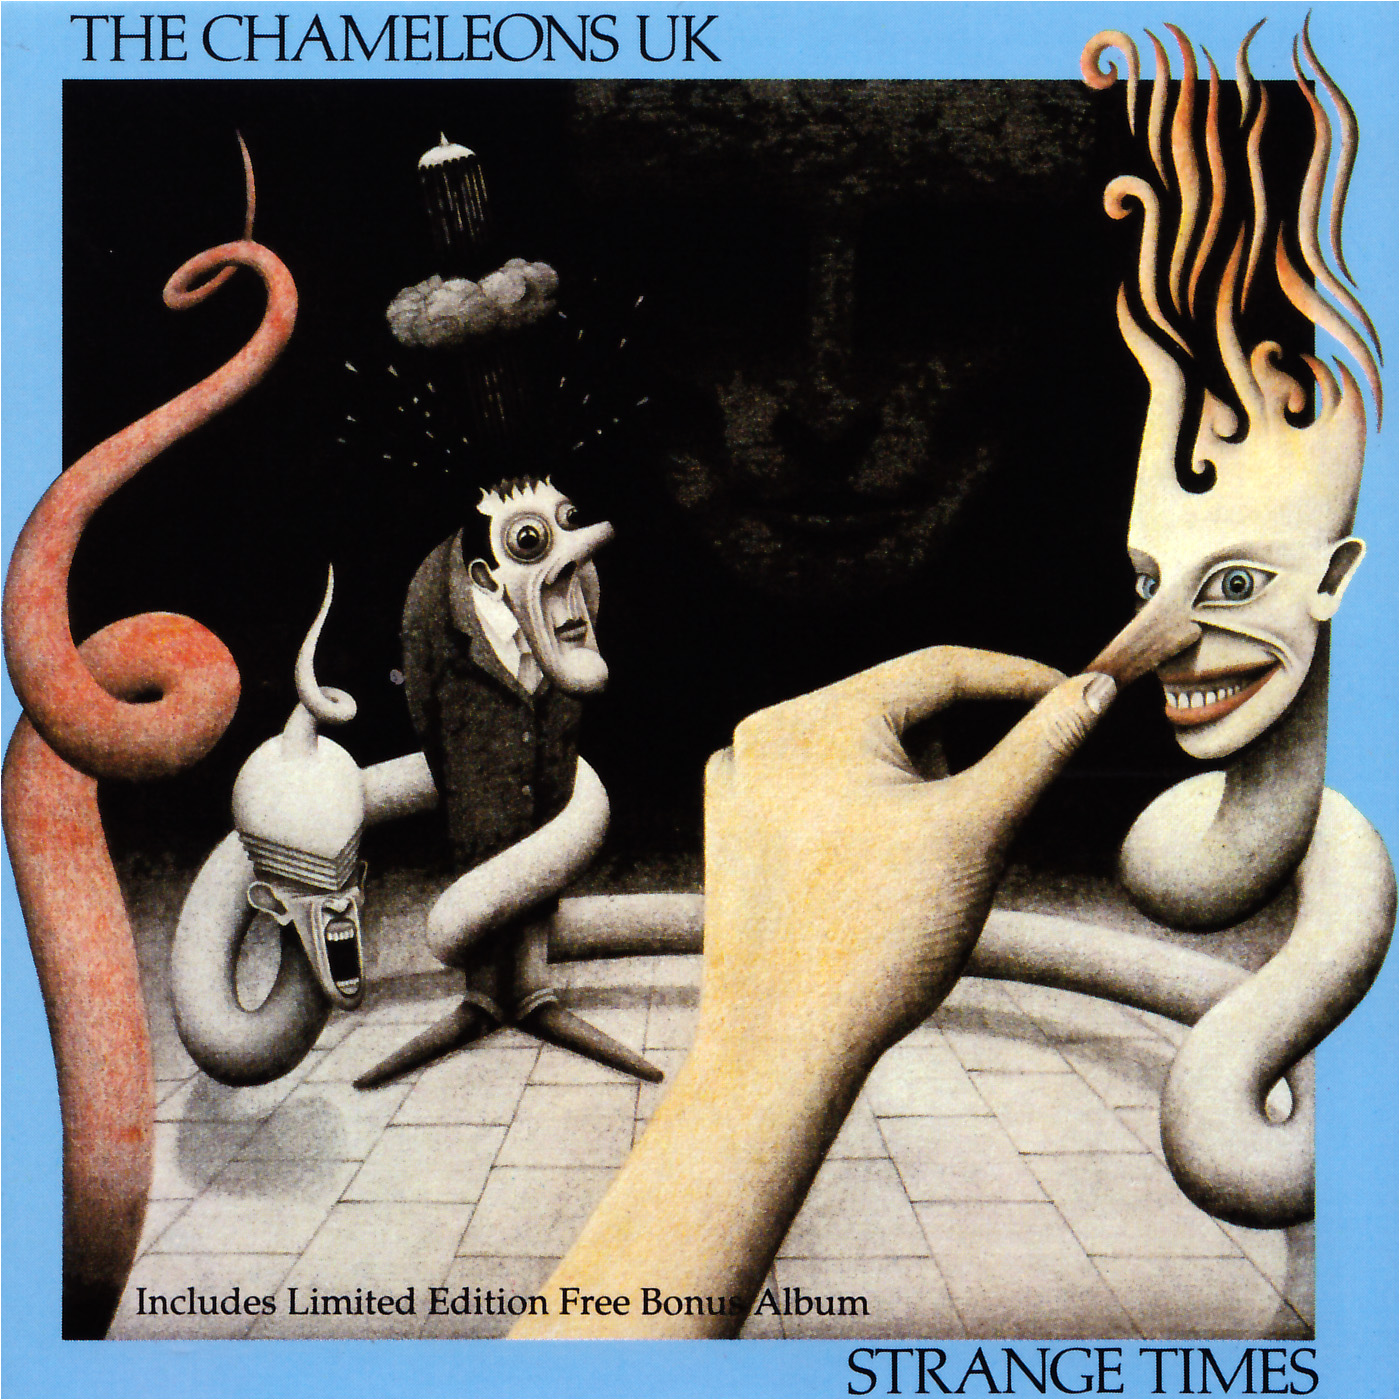 Drummer John Lever Of The Chameleons Has Died